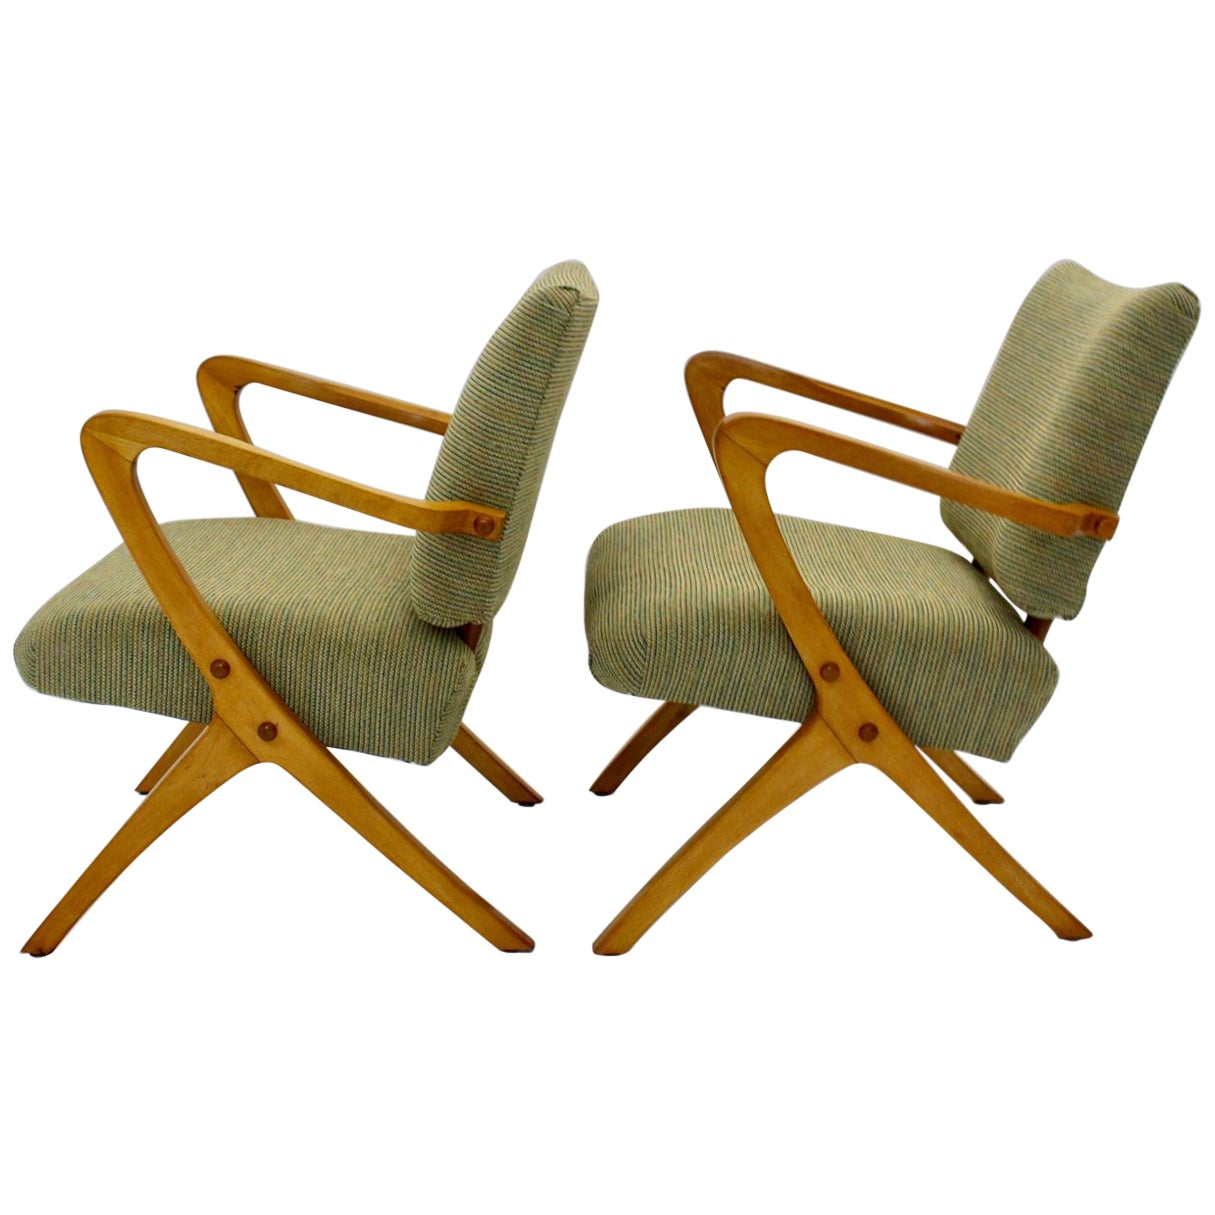 Green Beech Vintage Mid Century Modern Armchairs or Lounge Chairs Vienna, 1950s